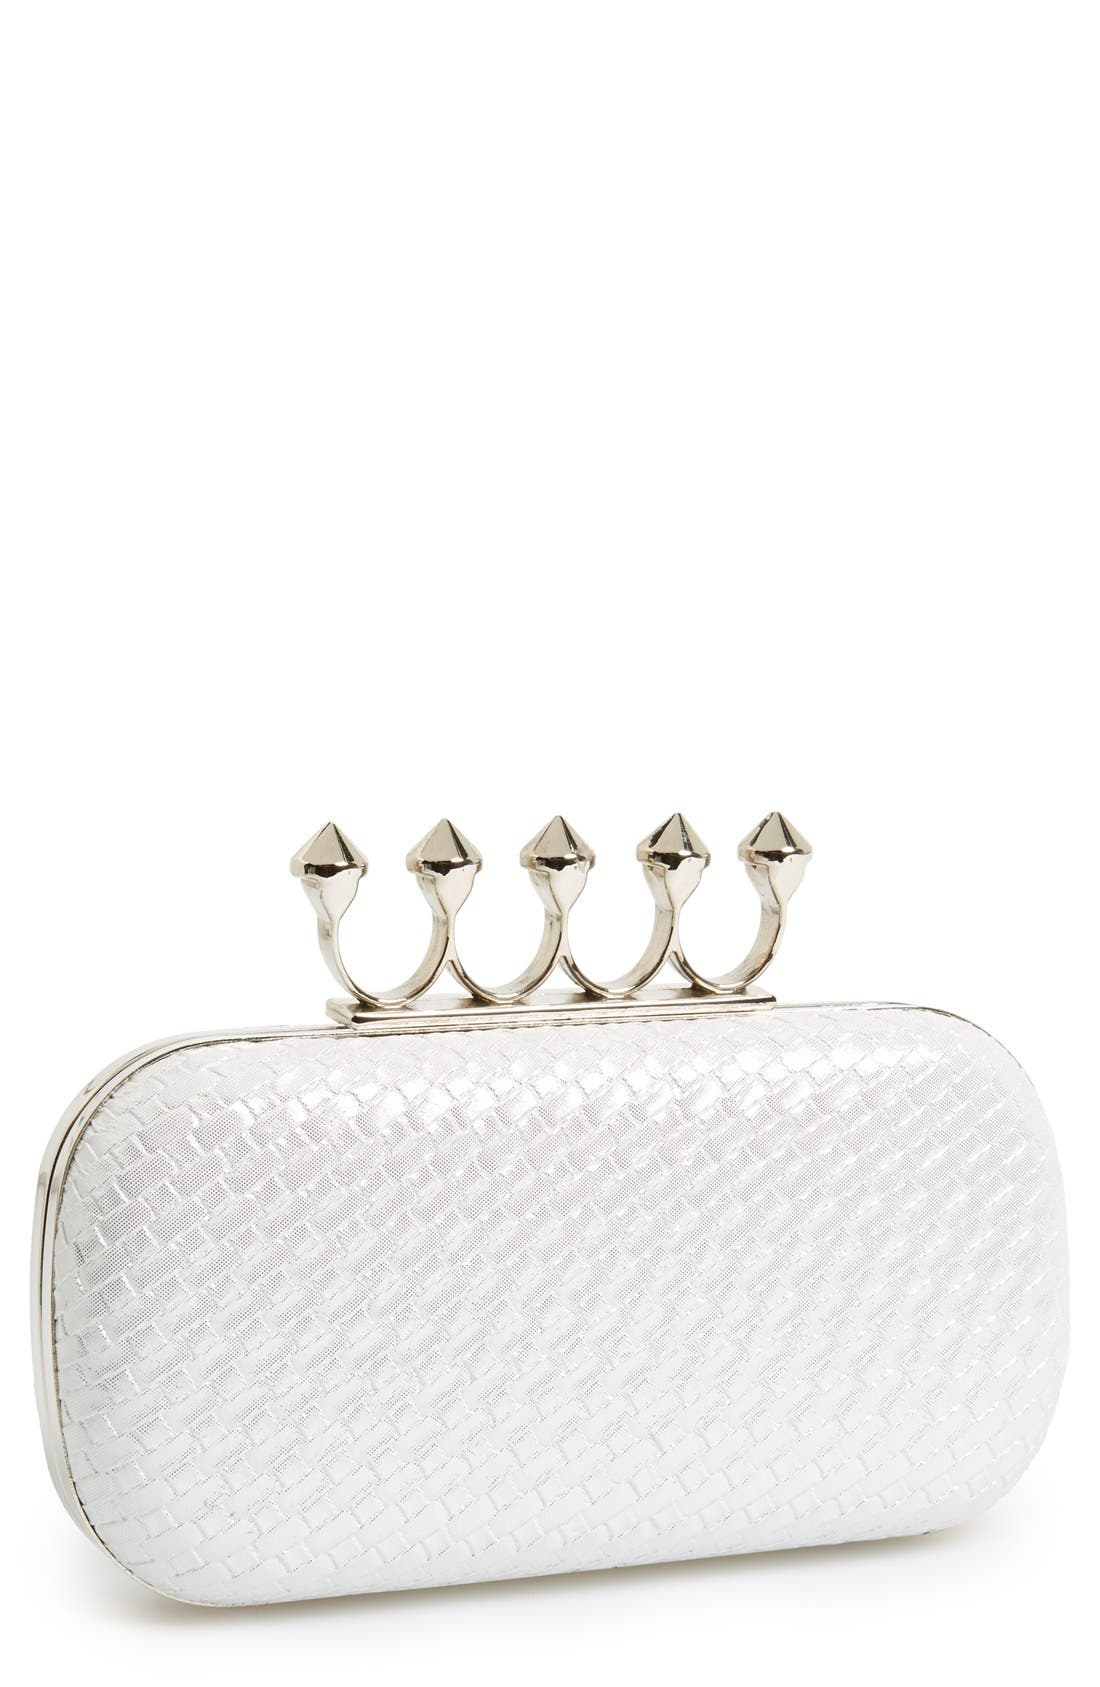 Alternate Image 1 Selected - Natasha Couture Knuckle Clasp Minaudiere